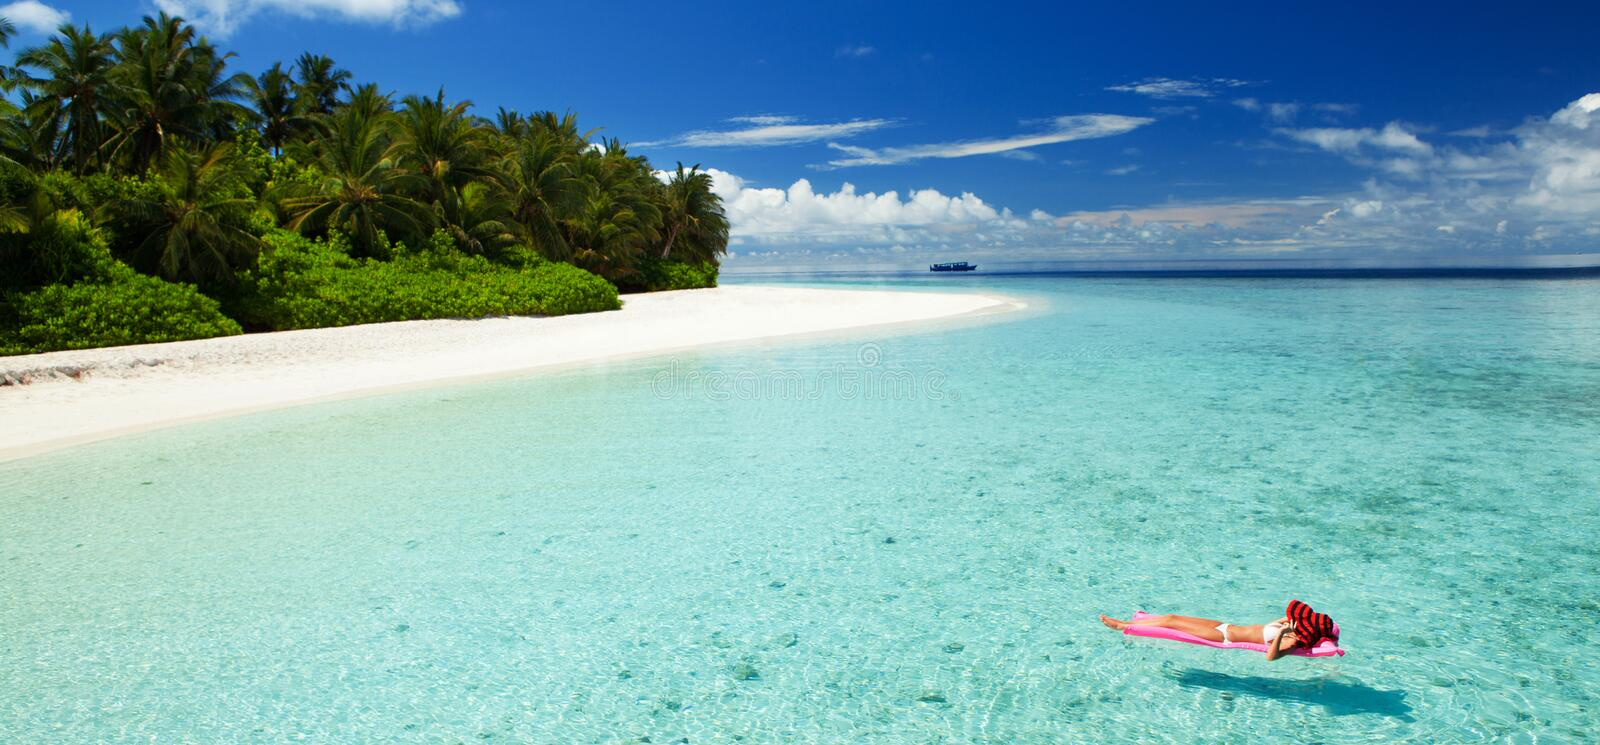 Woman swim and relax in the sea. Happy island lifestyle. White sand, crystal-blue sea of tropical beach. Vacation at Paradise. stock images